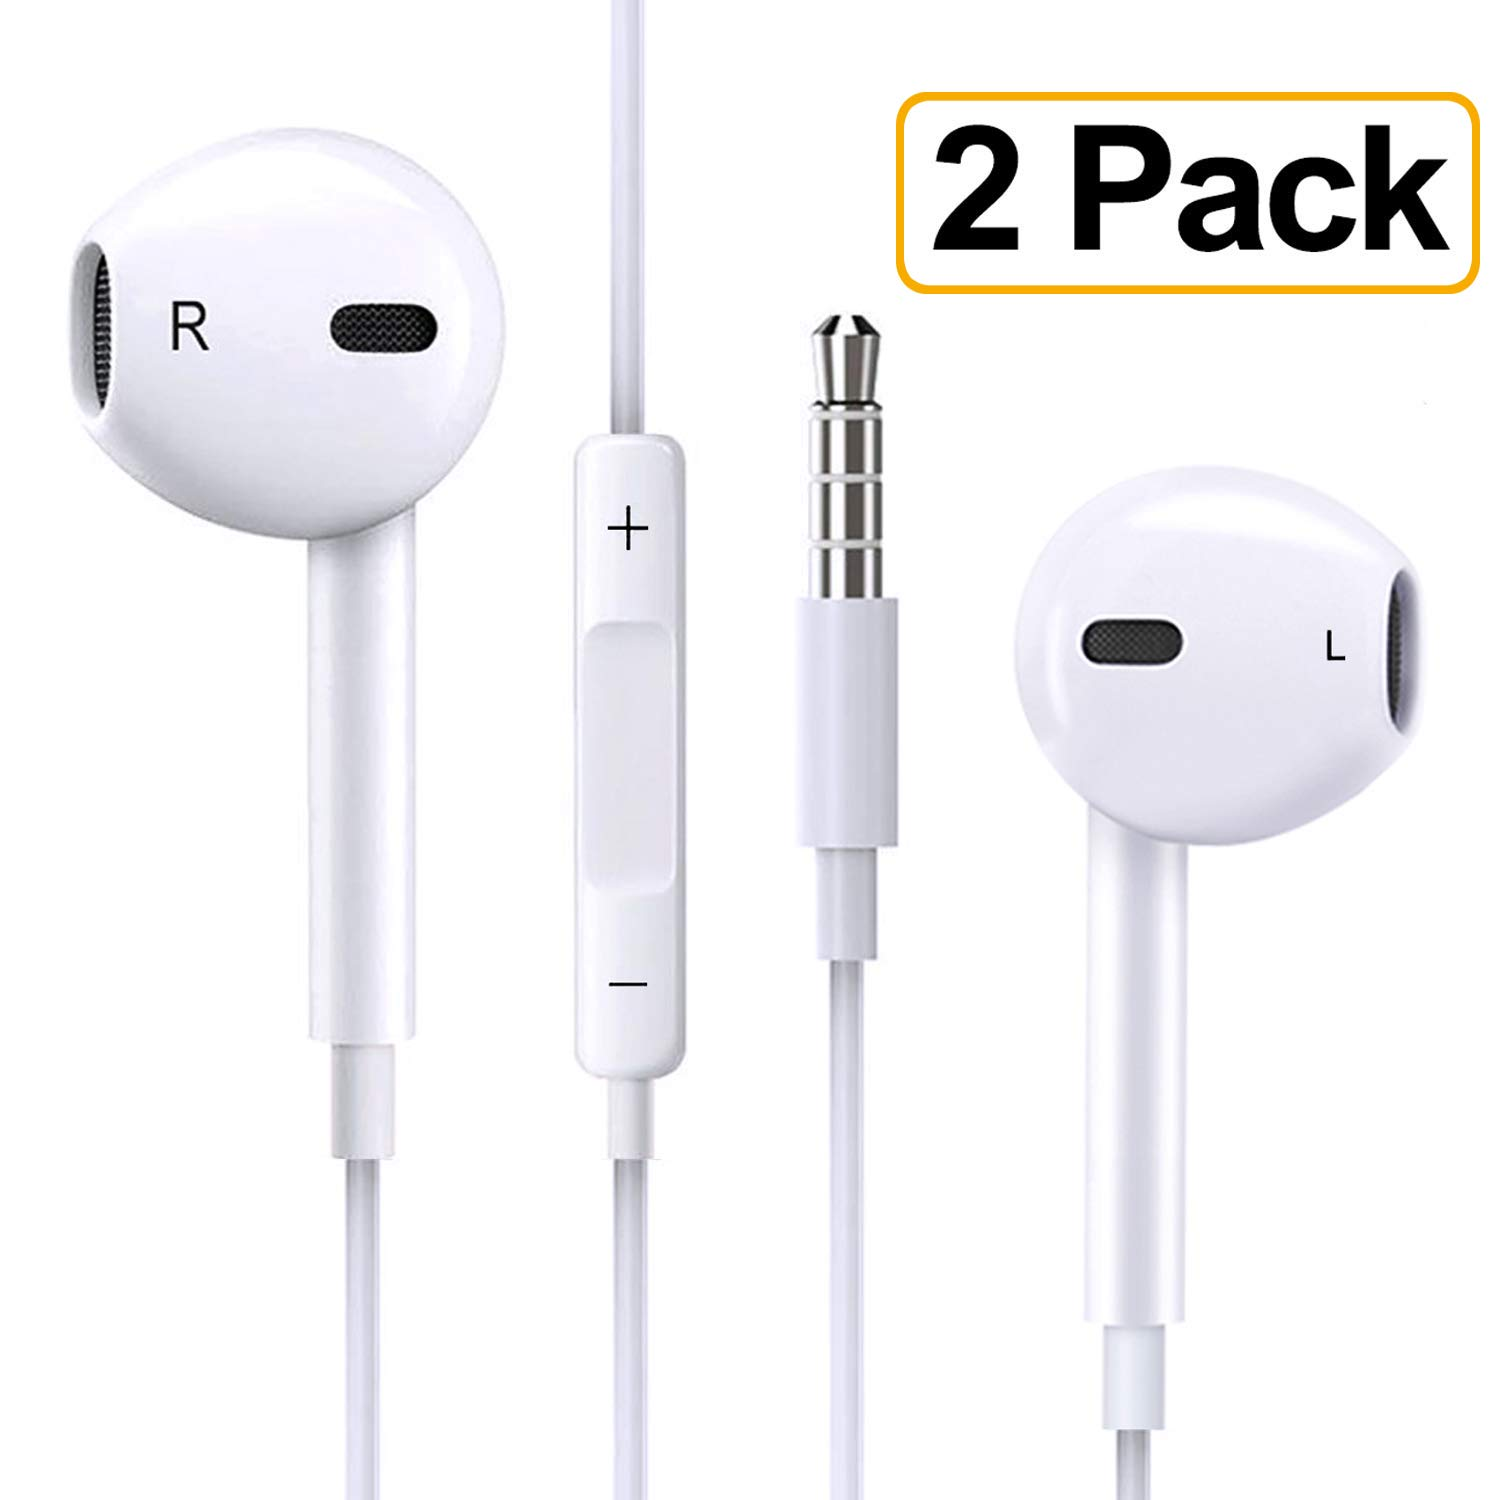 Good quality earbuds